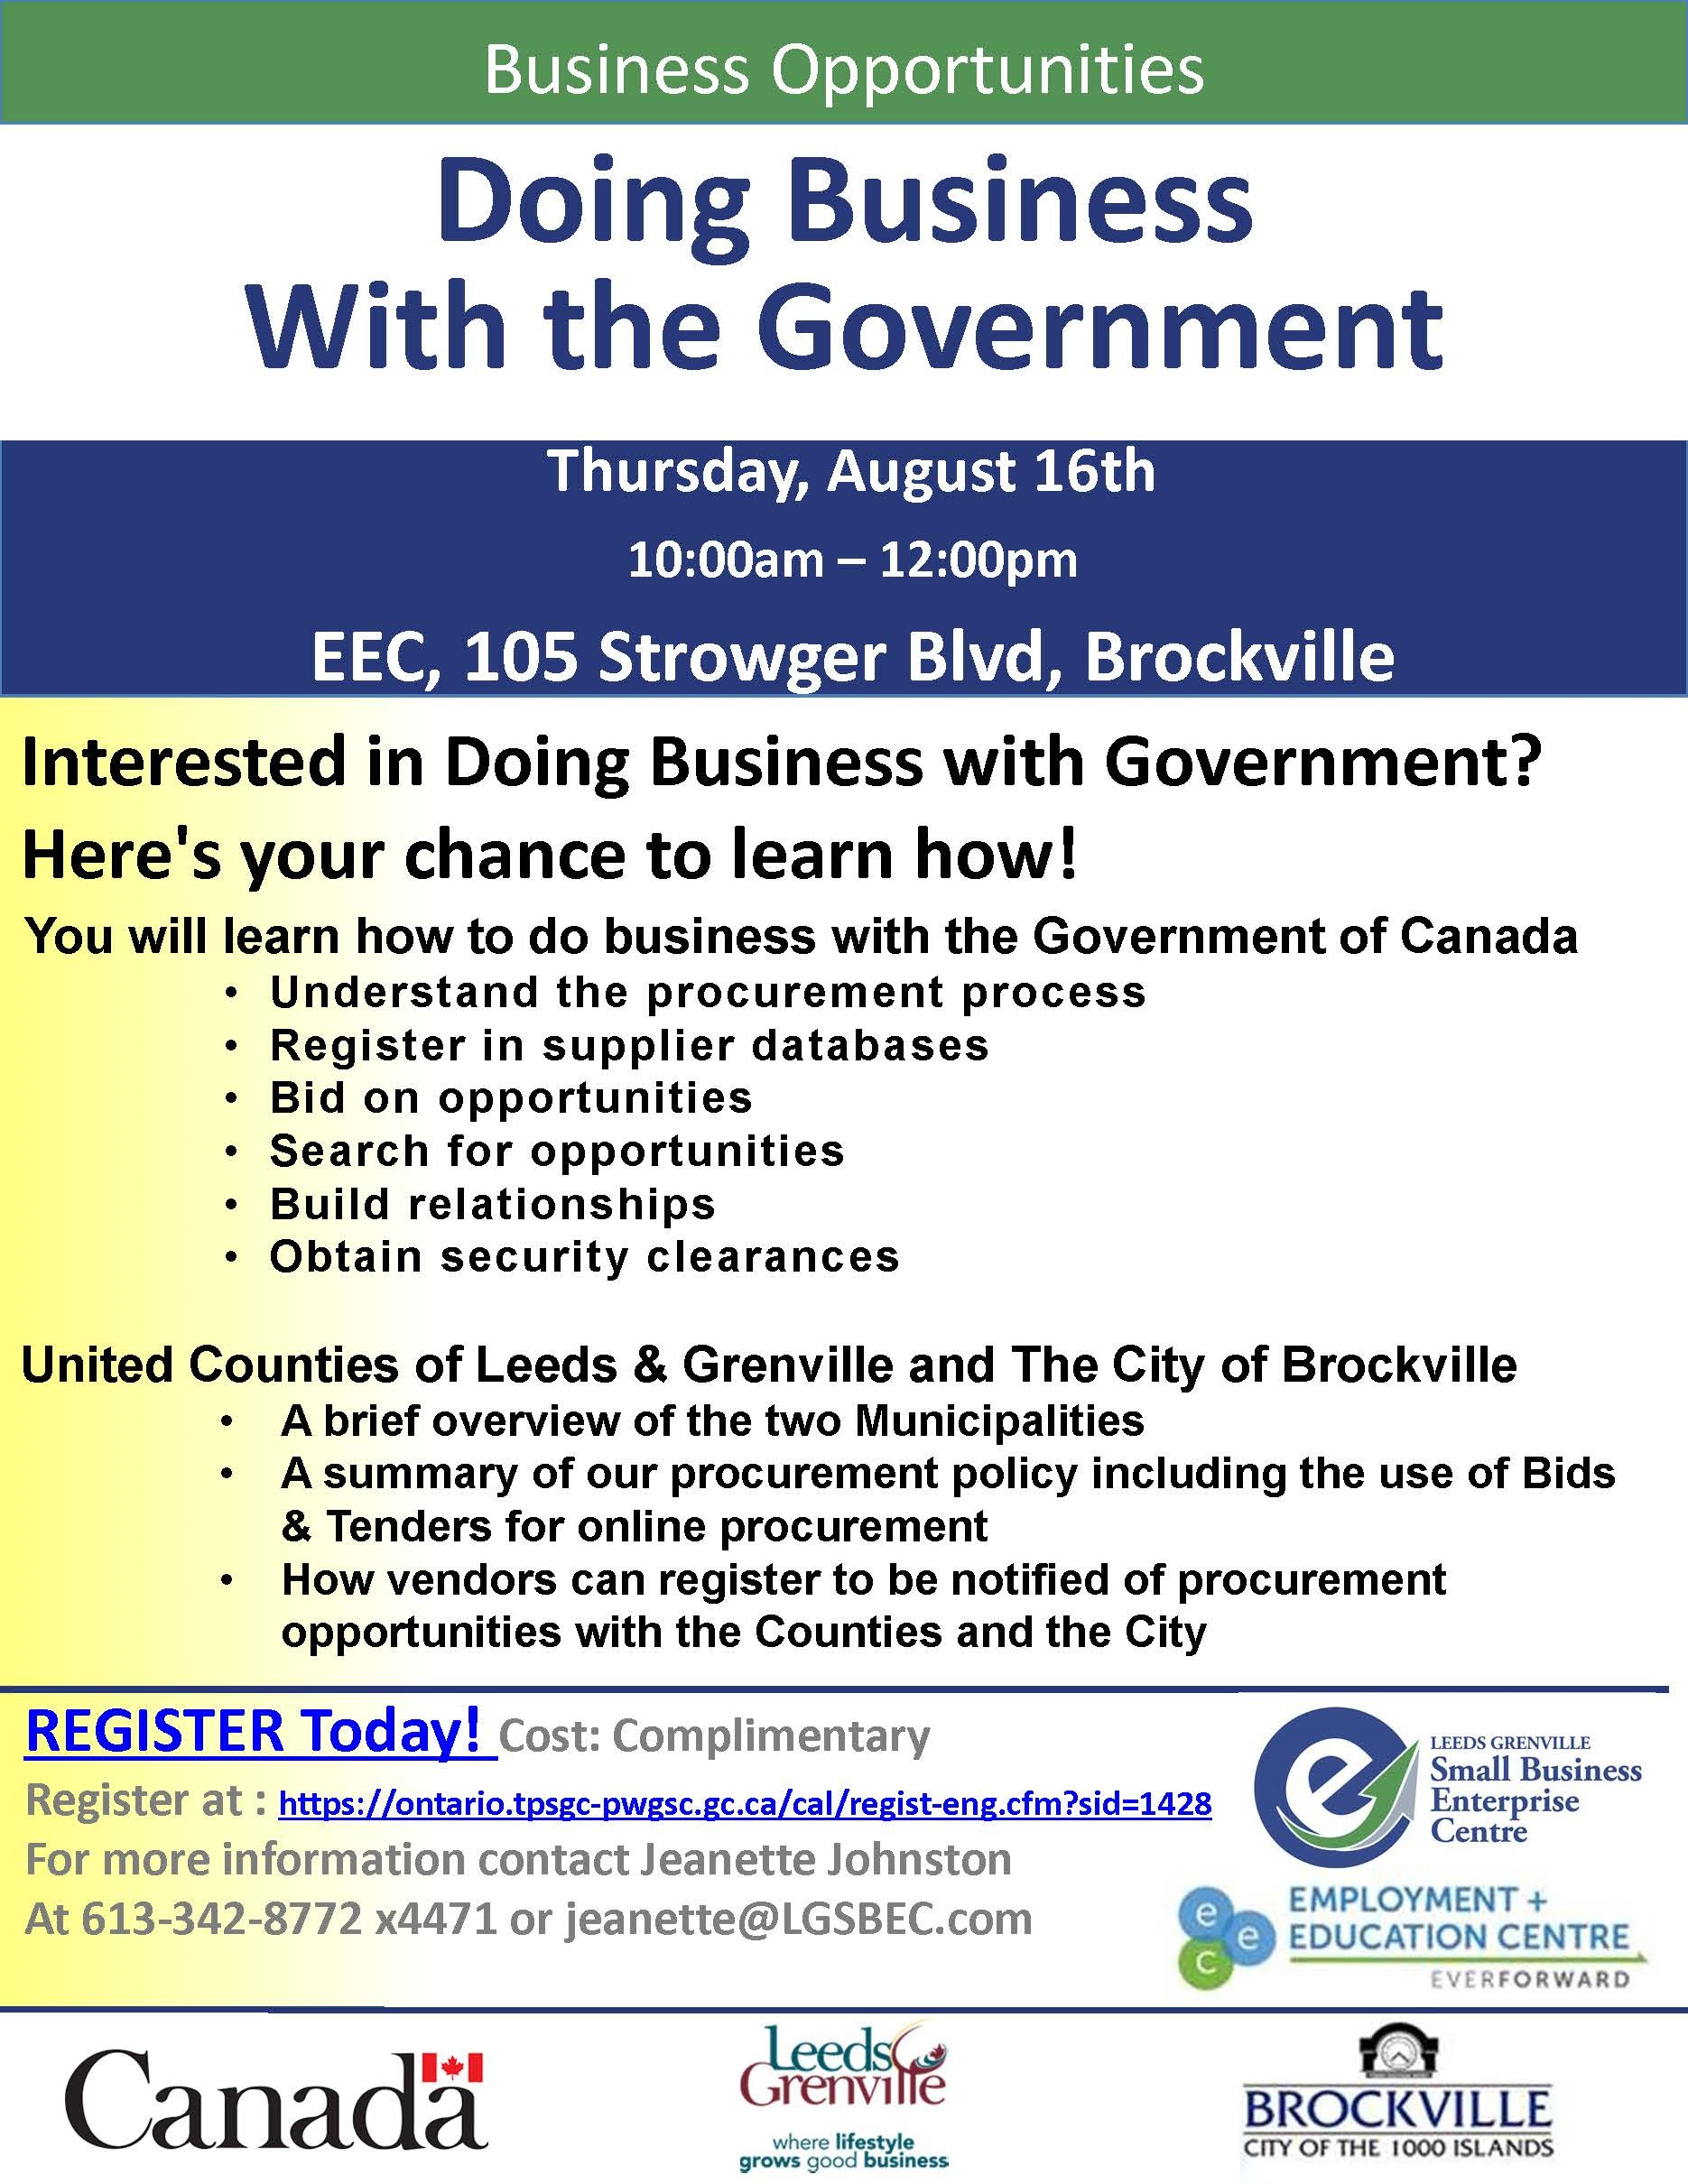 Doing Business with Government Seminar @ Employment and Education Centre | Brockville | Ontario | Canada